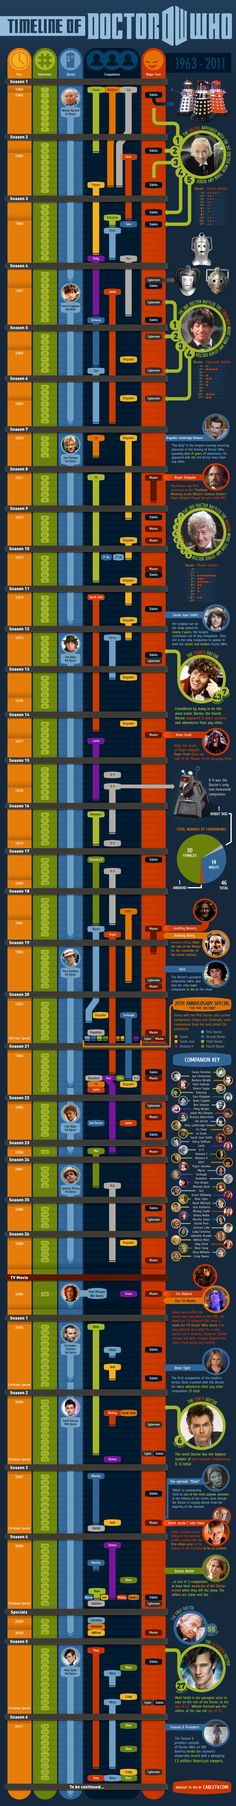 Doctor Who Timeline Graphic